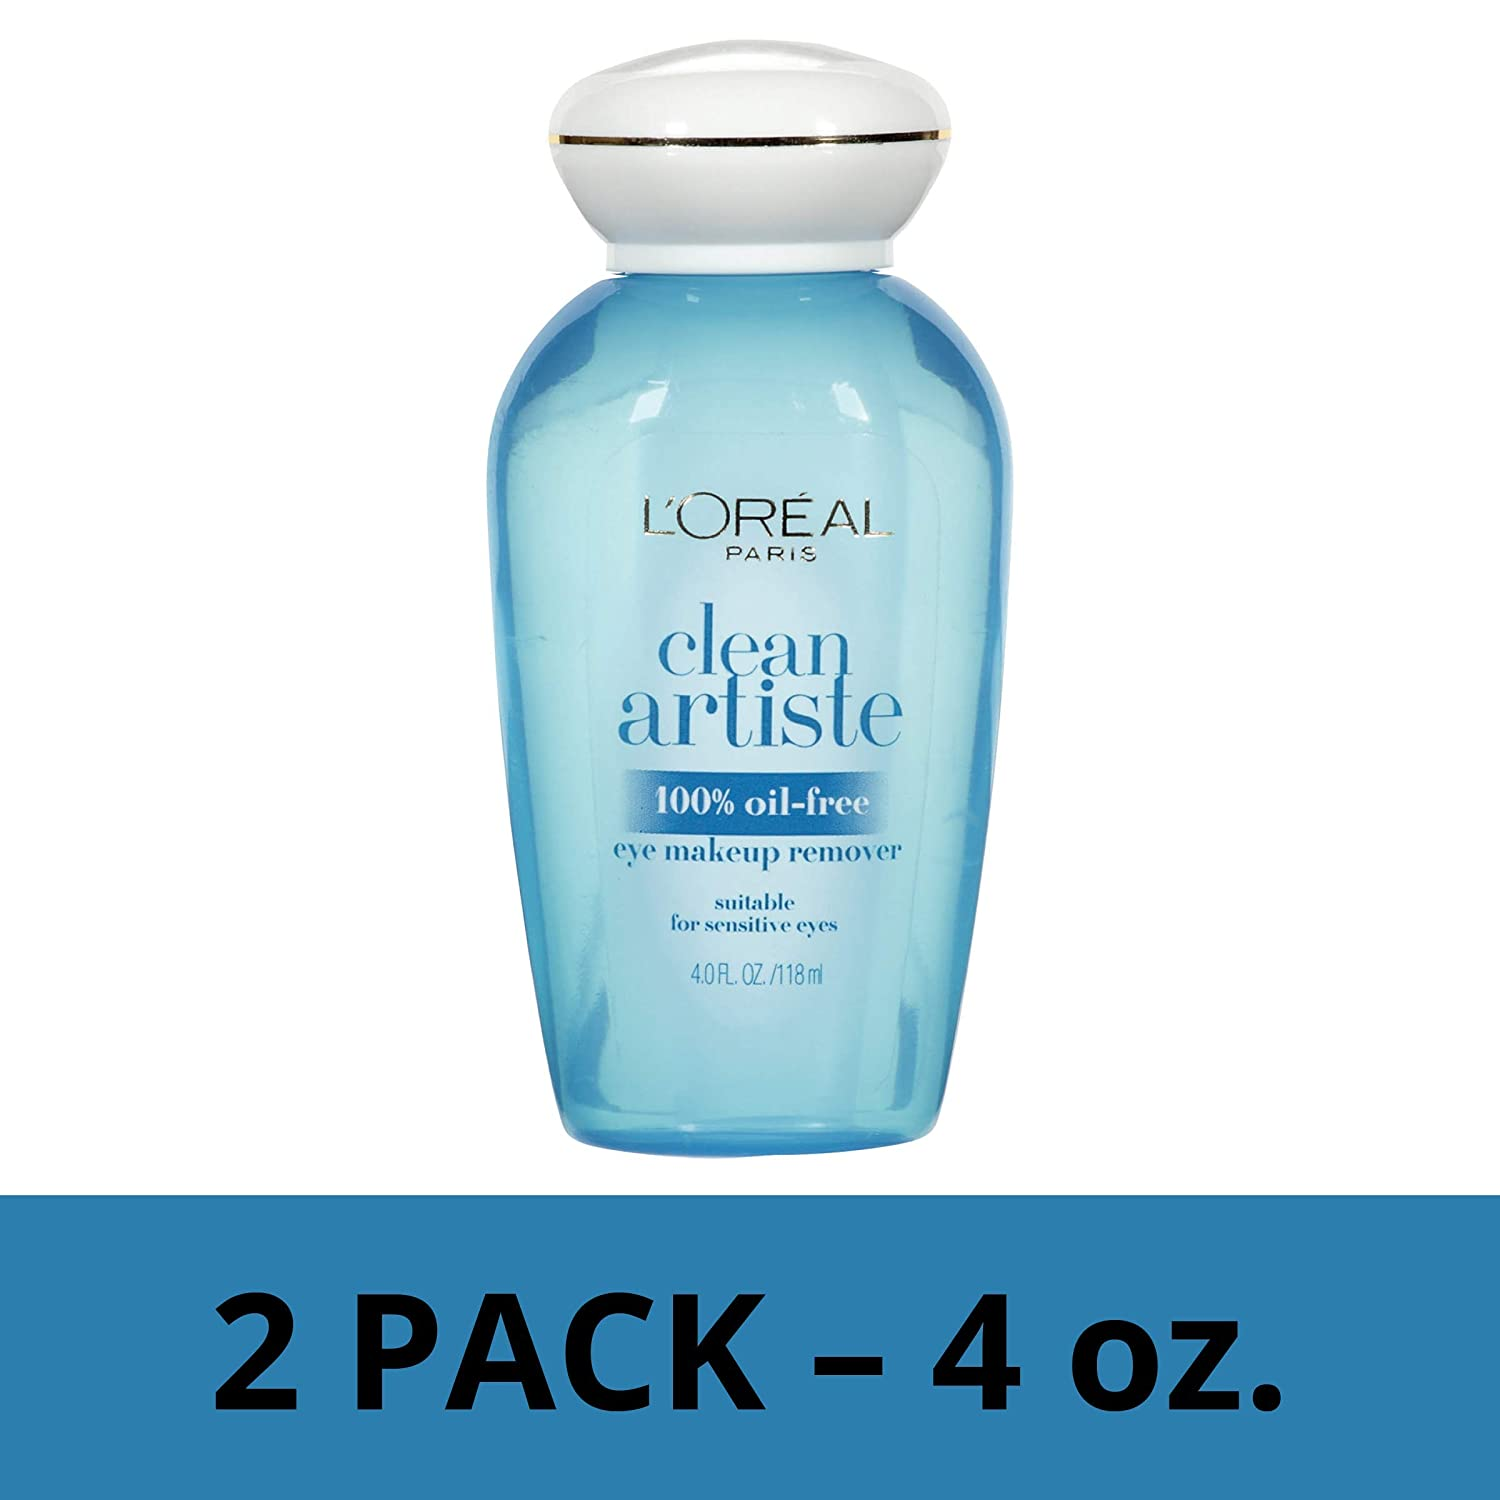 L'Oreal Paris Skin Care Clean Artiste Oil Free Eye Makeup Remover, 2 Count